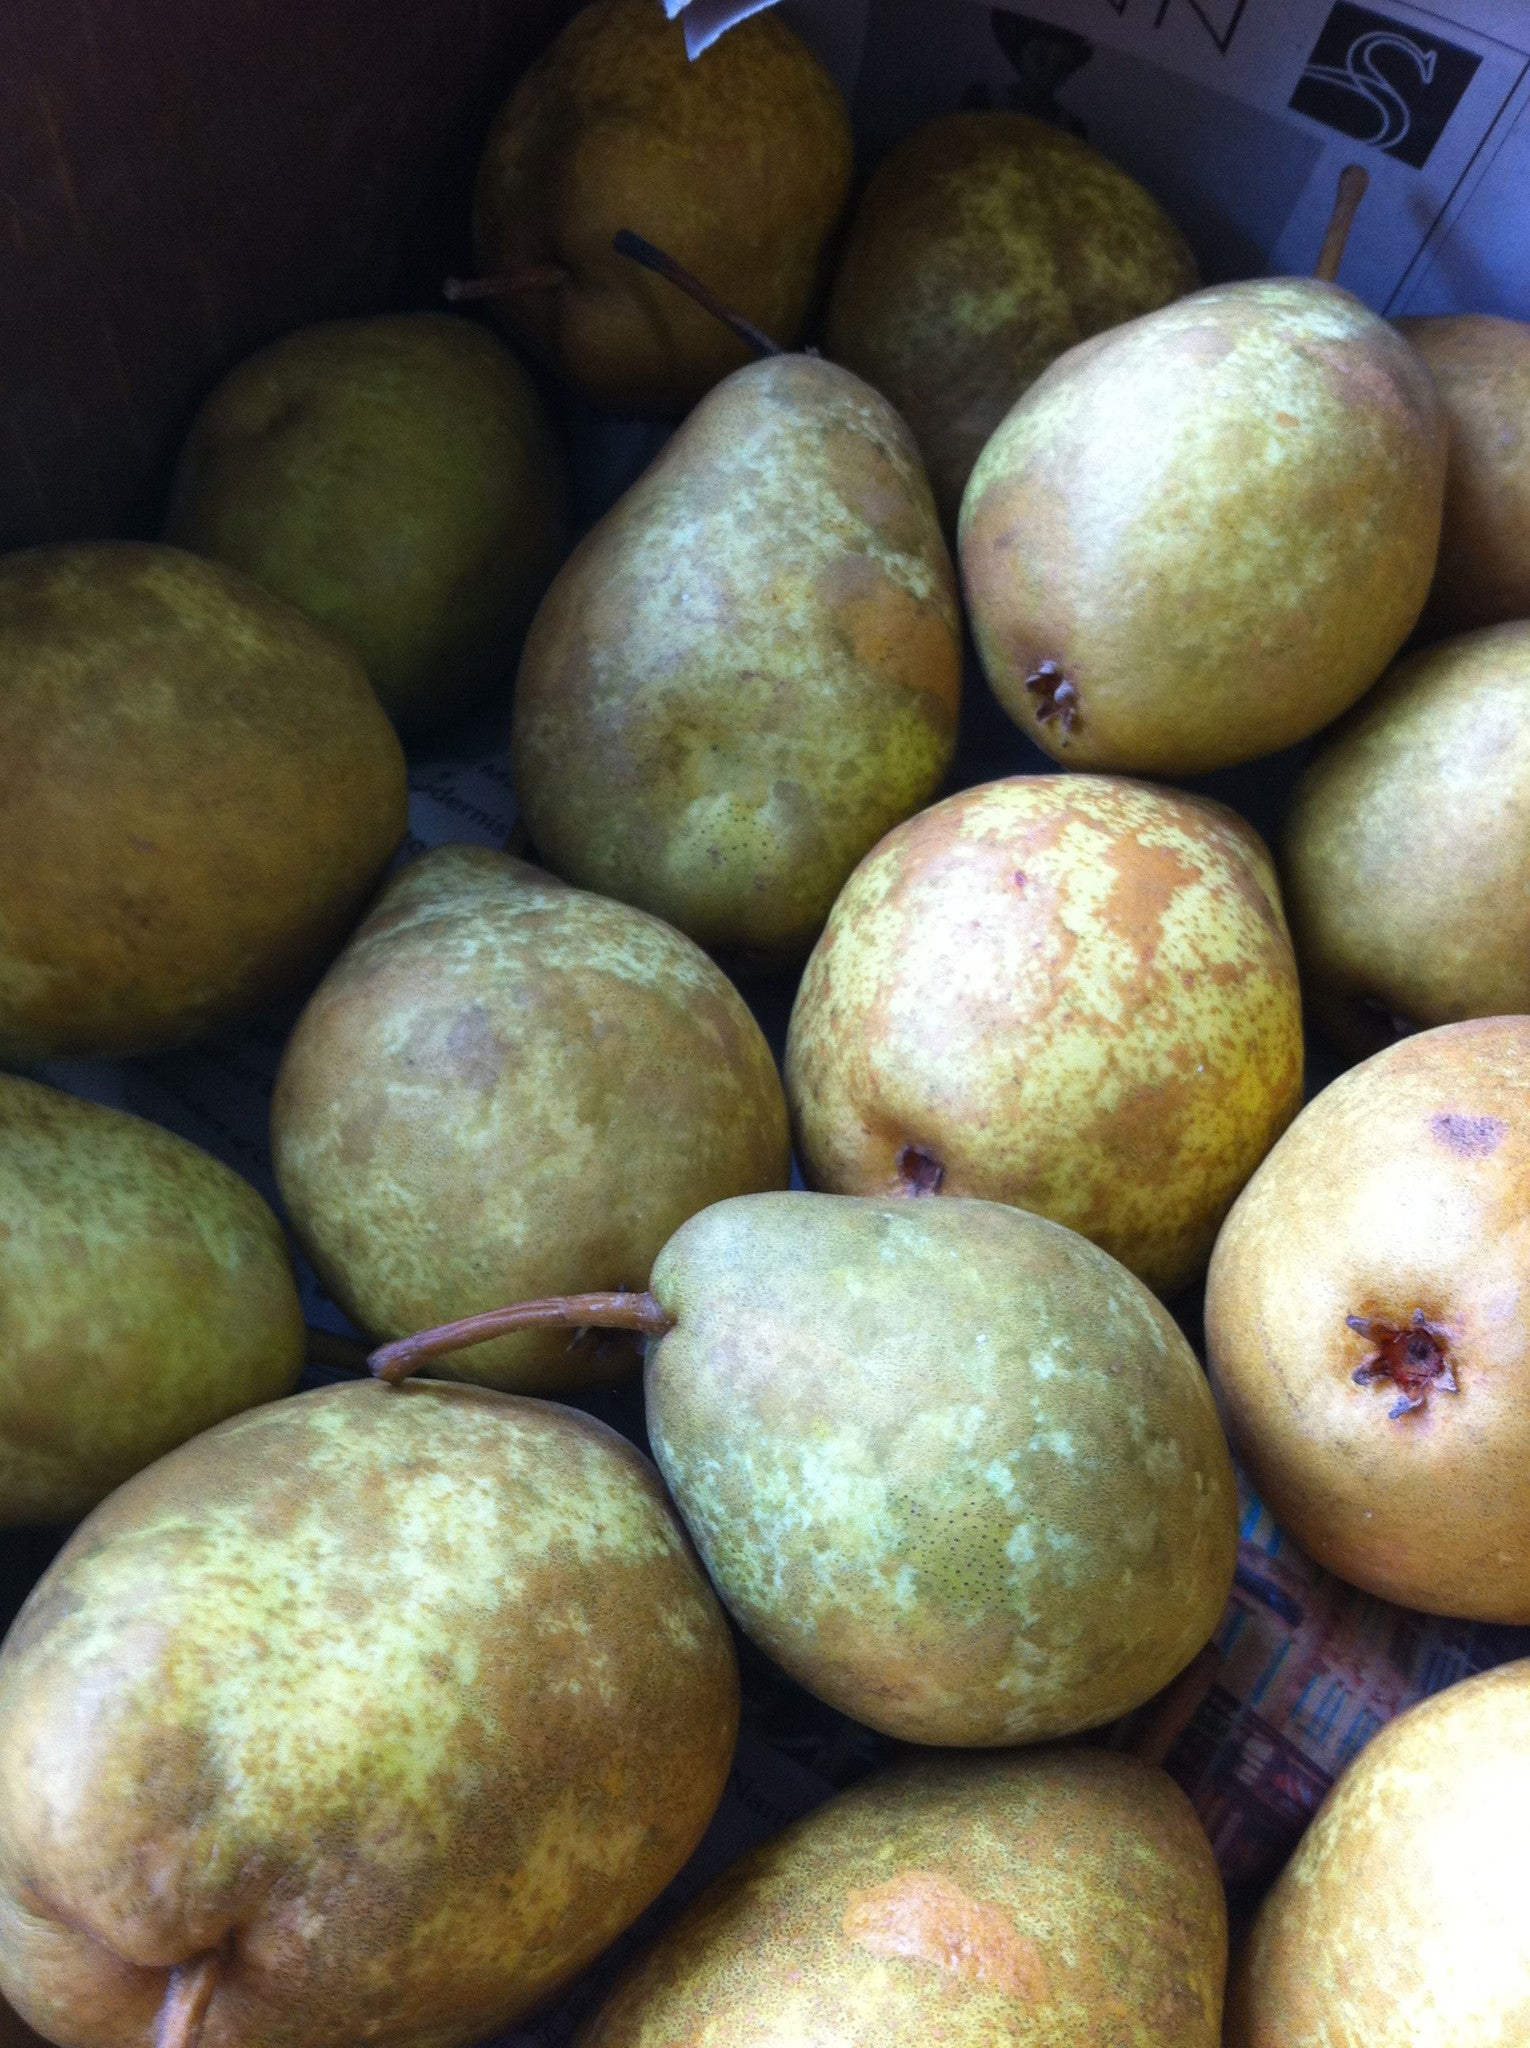 The Artisan at Work – Making Pear Preserves